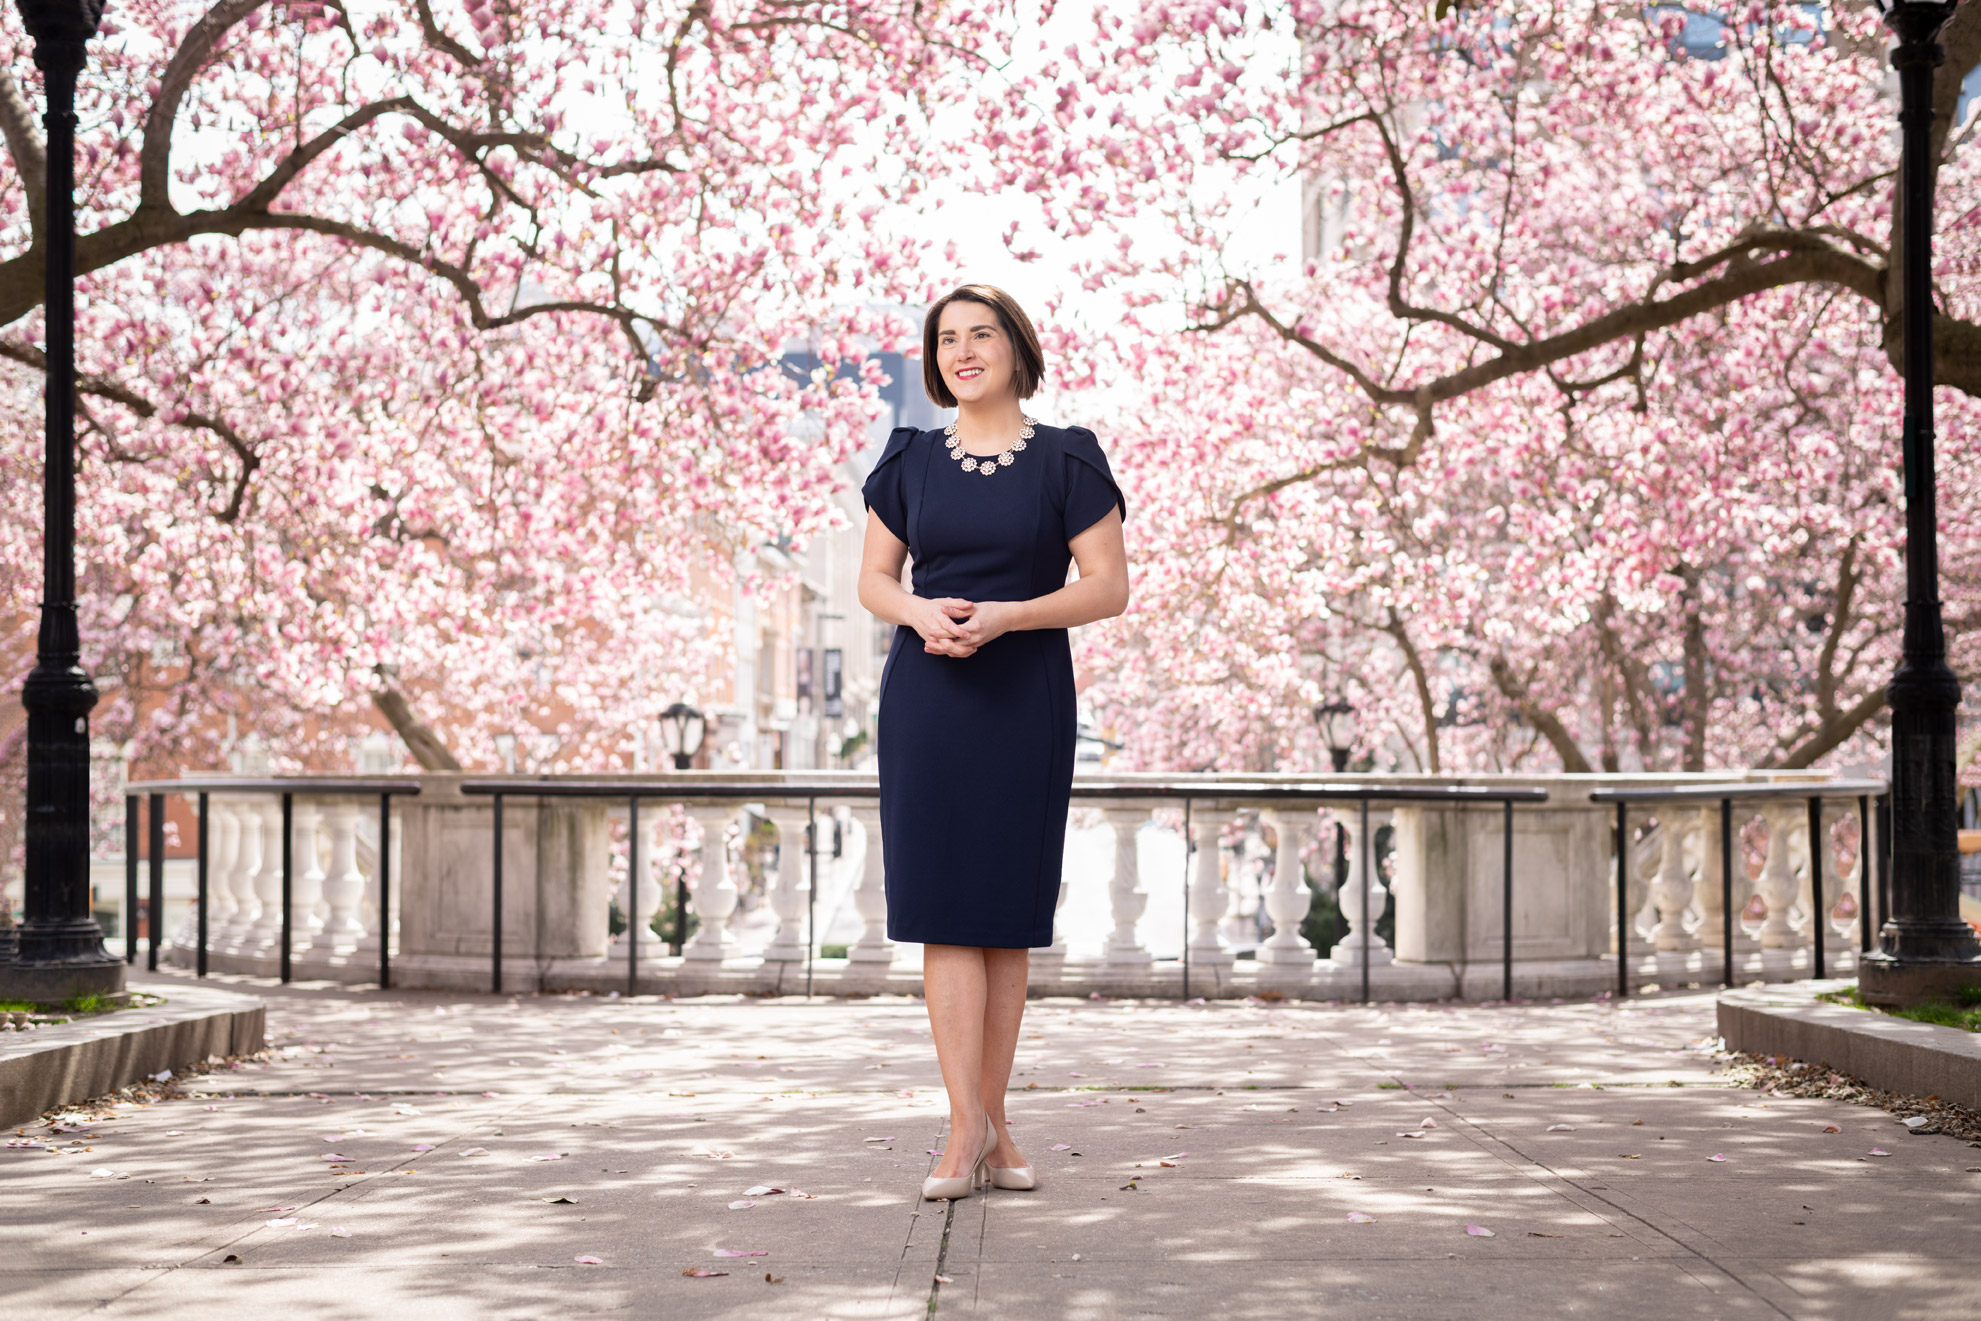 Soprano Chelsea Buyalos standing in front of pink flowering trees